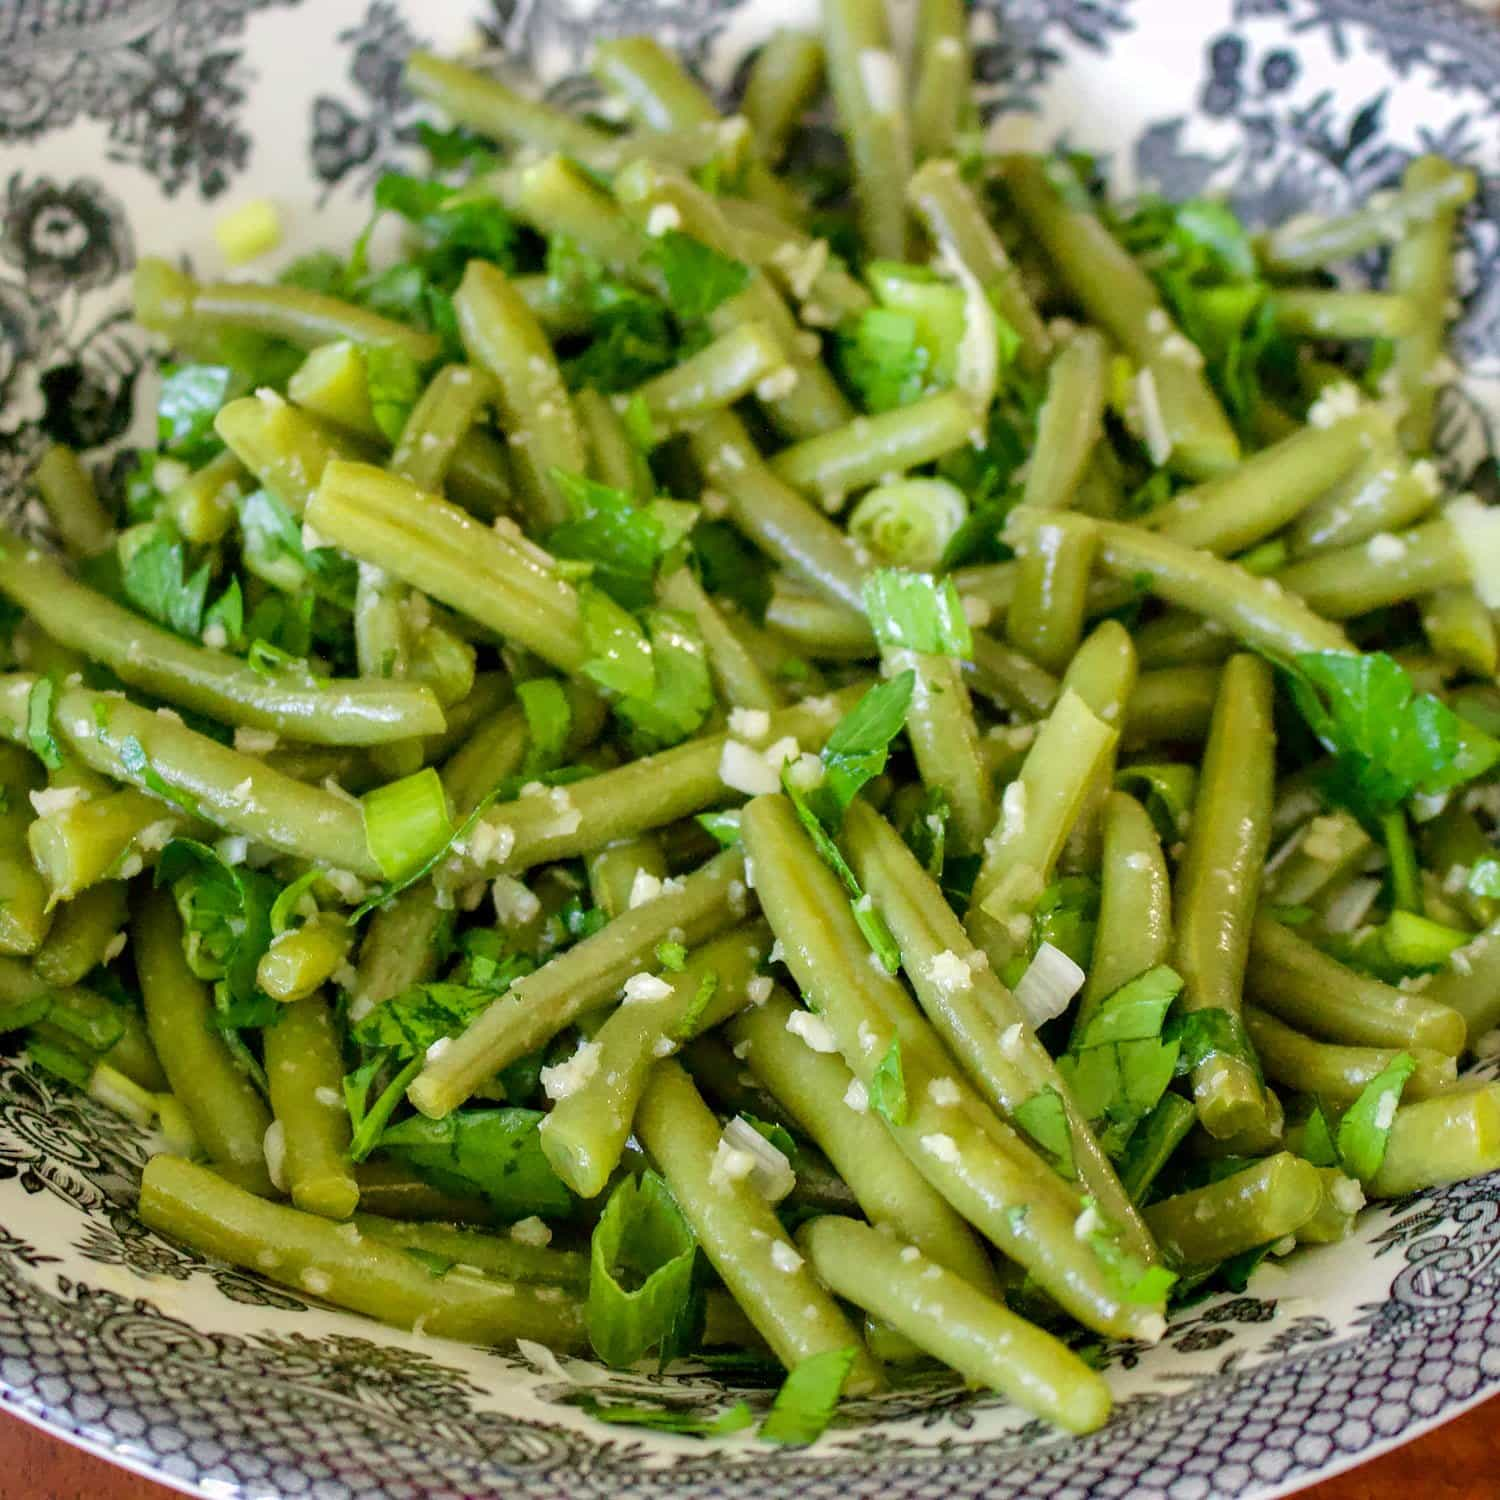 Romanian Garlic Green Beans Salad is a traditional summer salad. An easy way to eat green beans, this salad makes a great addition to your meal. It is served cold and stays well until the next day. In the winter, I use lots of frozen green beans, but in the summer I love going to the Farmers Market and buy fresh ones.